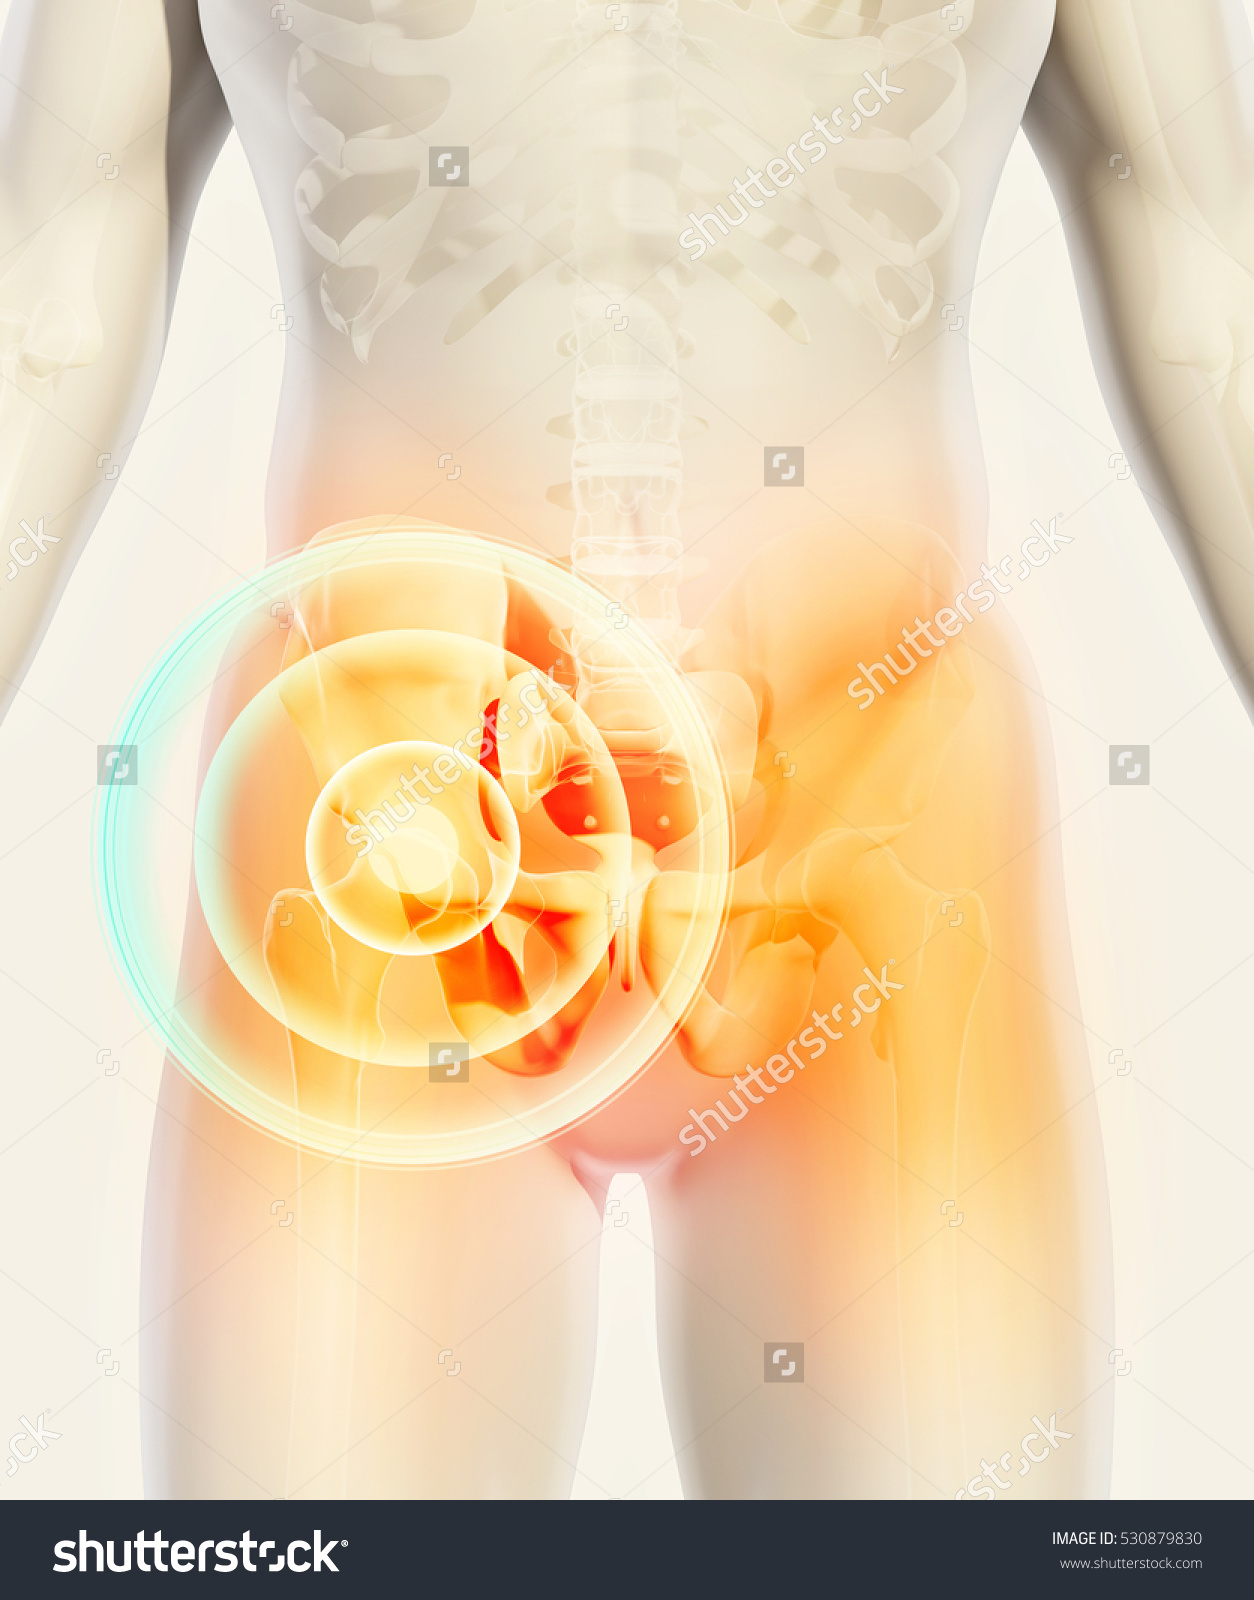 stock-photo--d-illustration-hip-painful-skeleton-x-ray-medical-concept-530879830.jpg